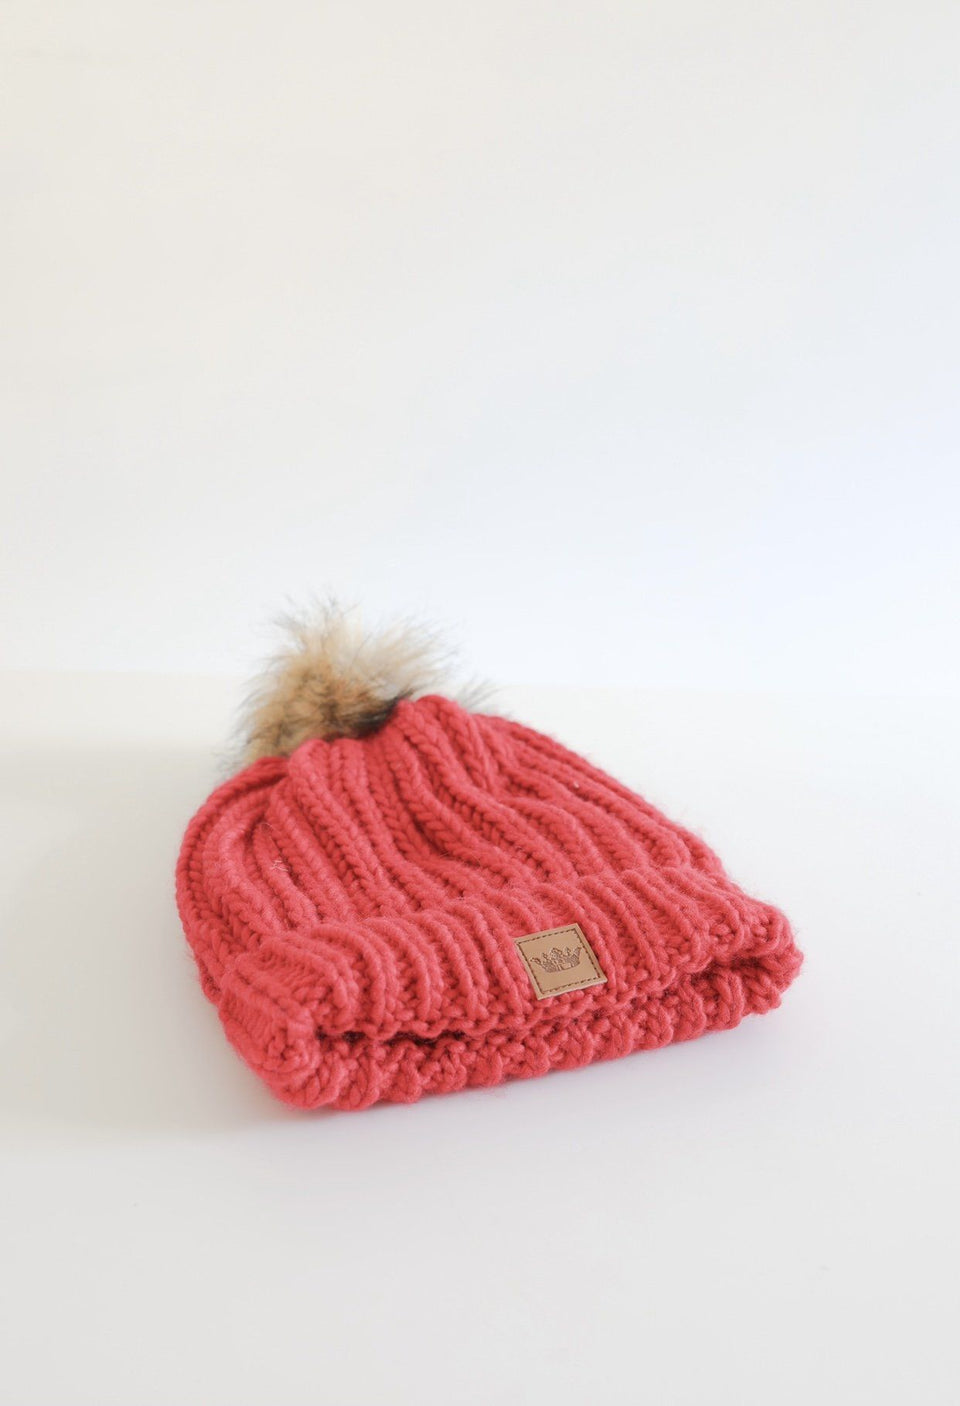 Fleece Lined Beanie with Pom - Red